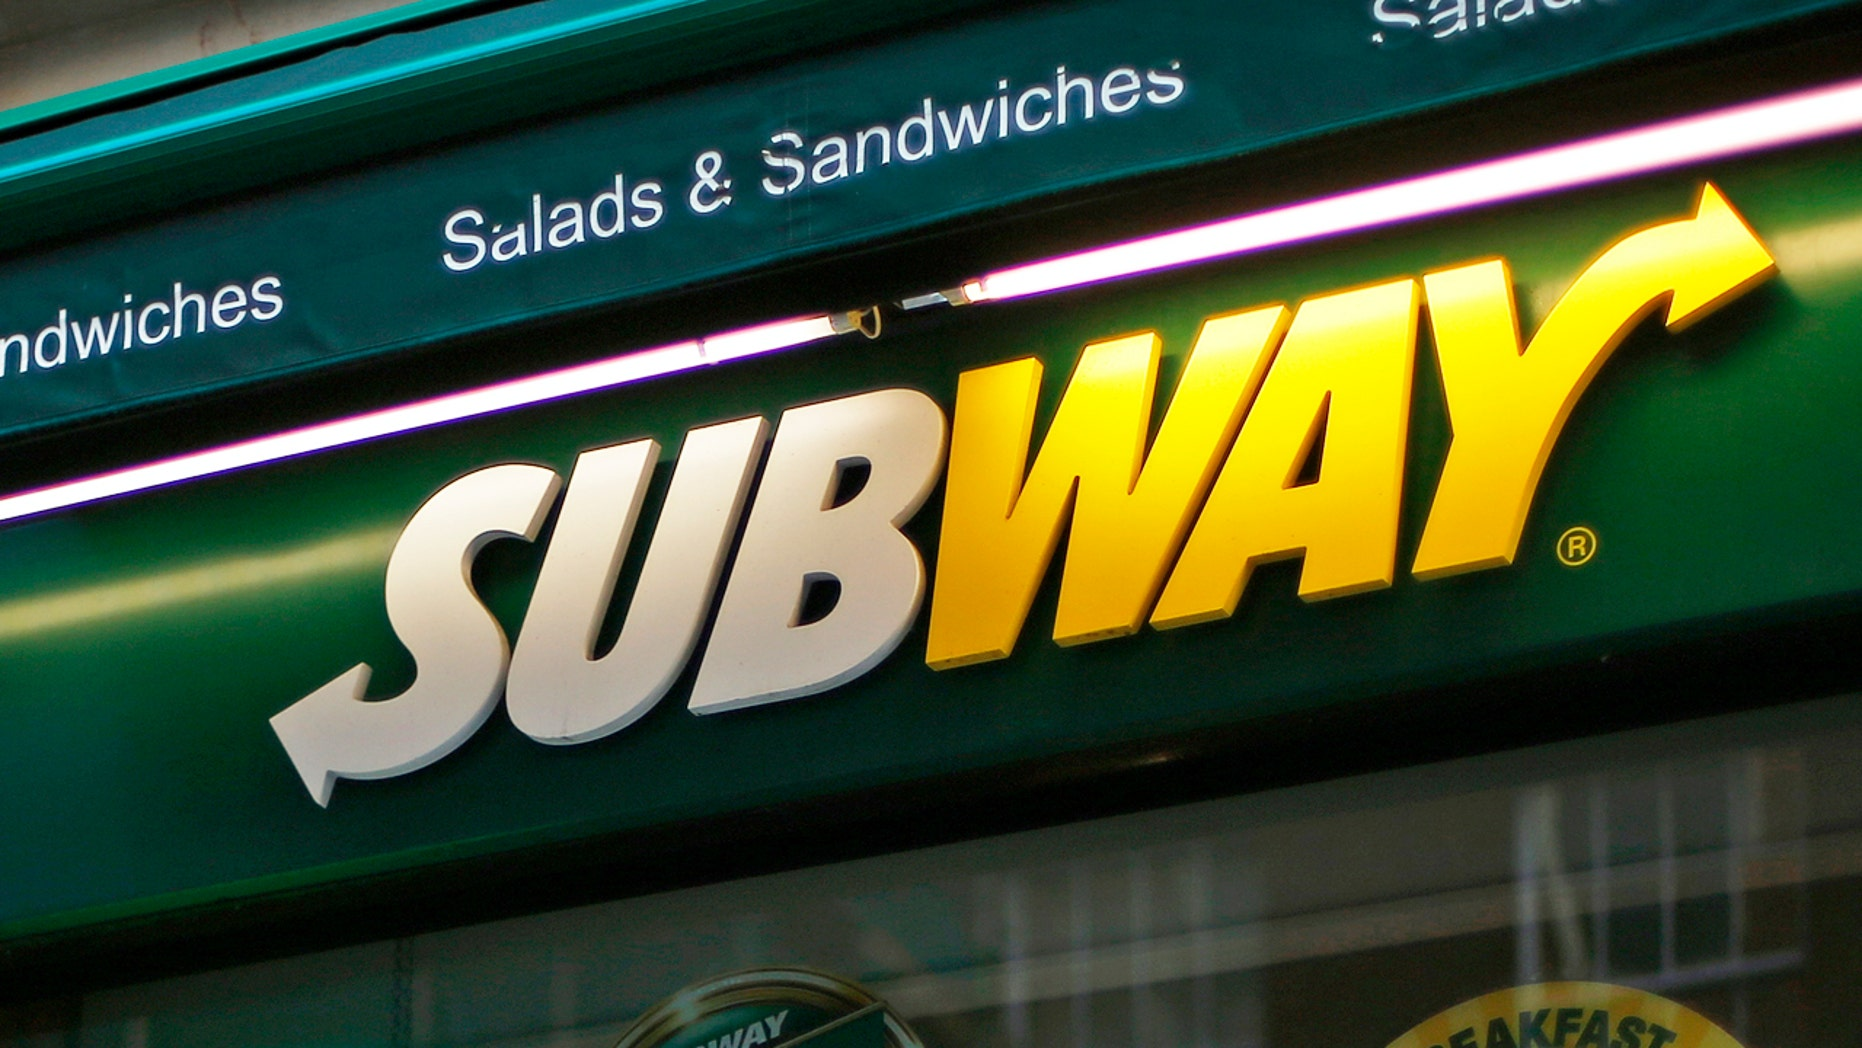 A man walks past a Subway sandwich store in central London January 22, 2014. Subway, one of the largest fast-food chains in the world, plans to open over 1,200 new stores in the UK and Ireland by 2020, creating another 13,000 jobs, it said on Wednesday.